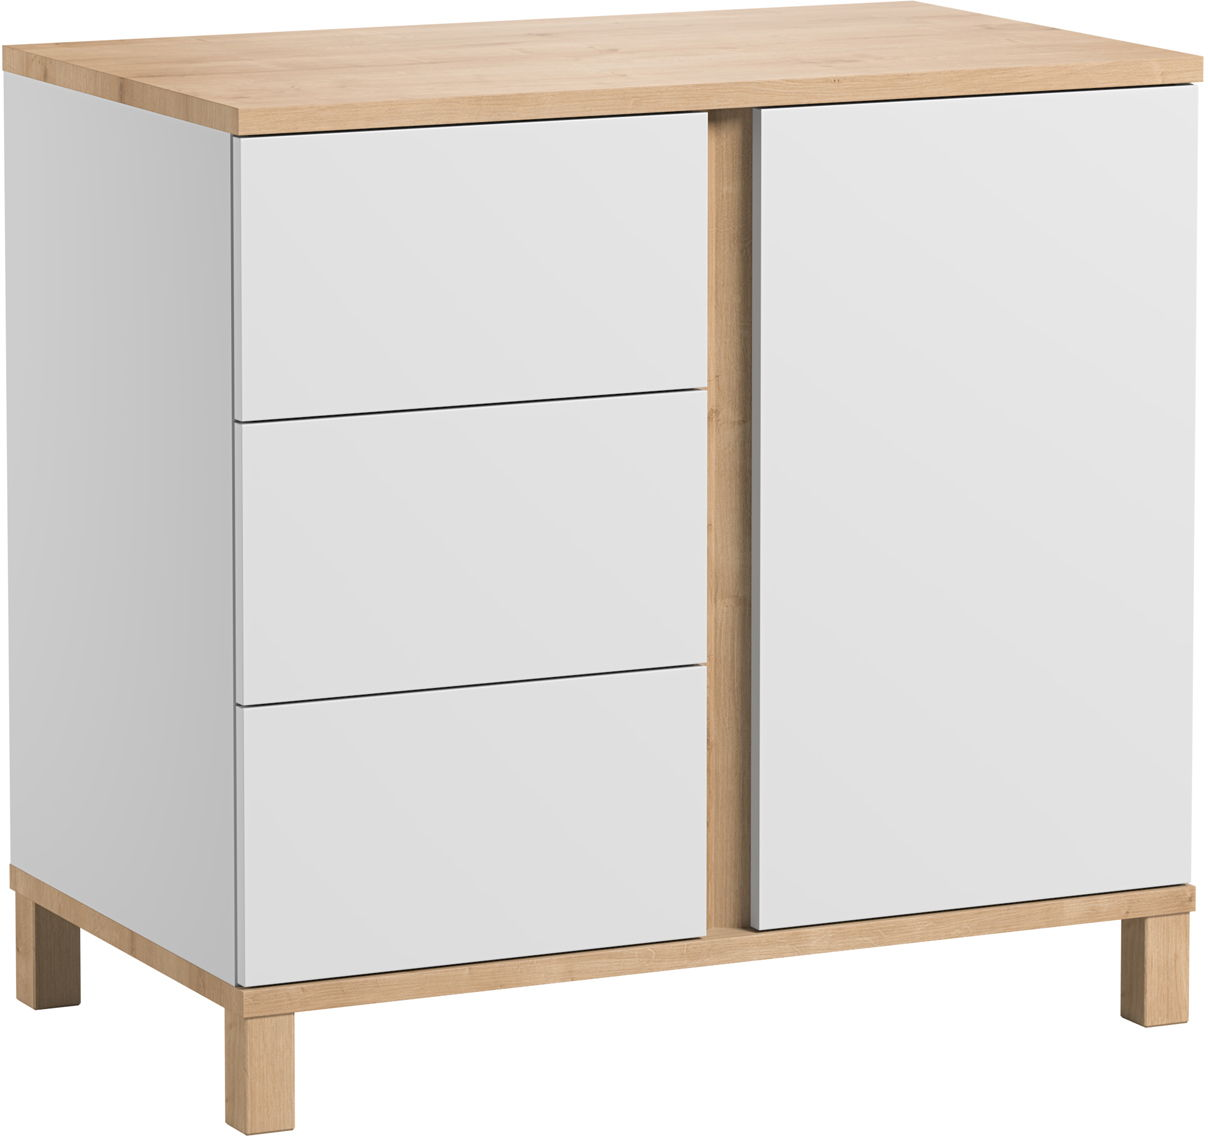 Meuble Vox Baby Vox Altitude Blanc 2 Meubles Commode Armoire 2